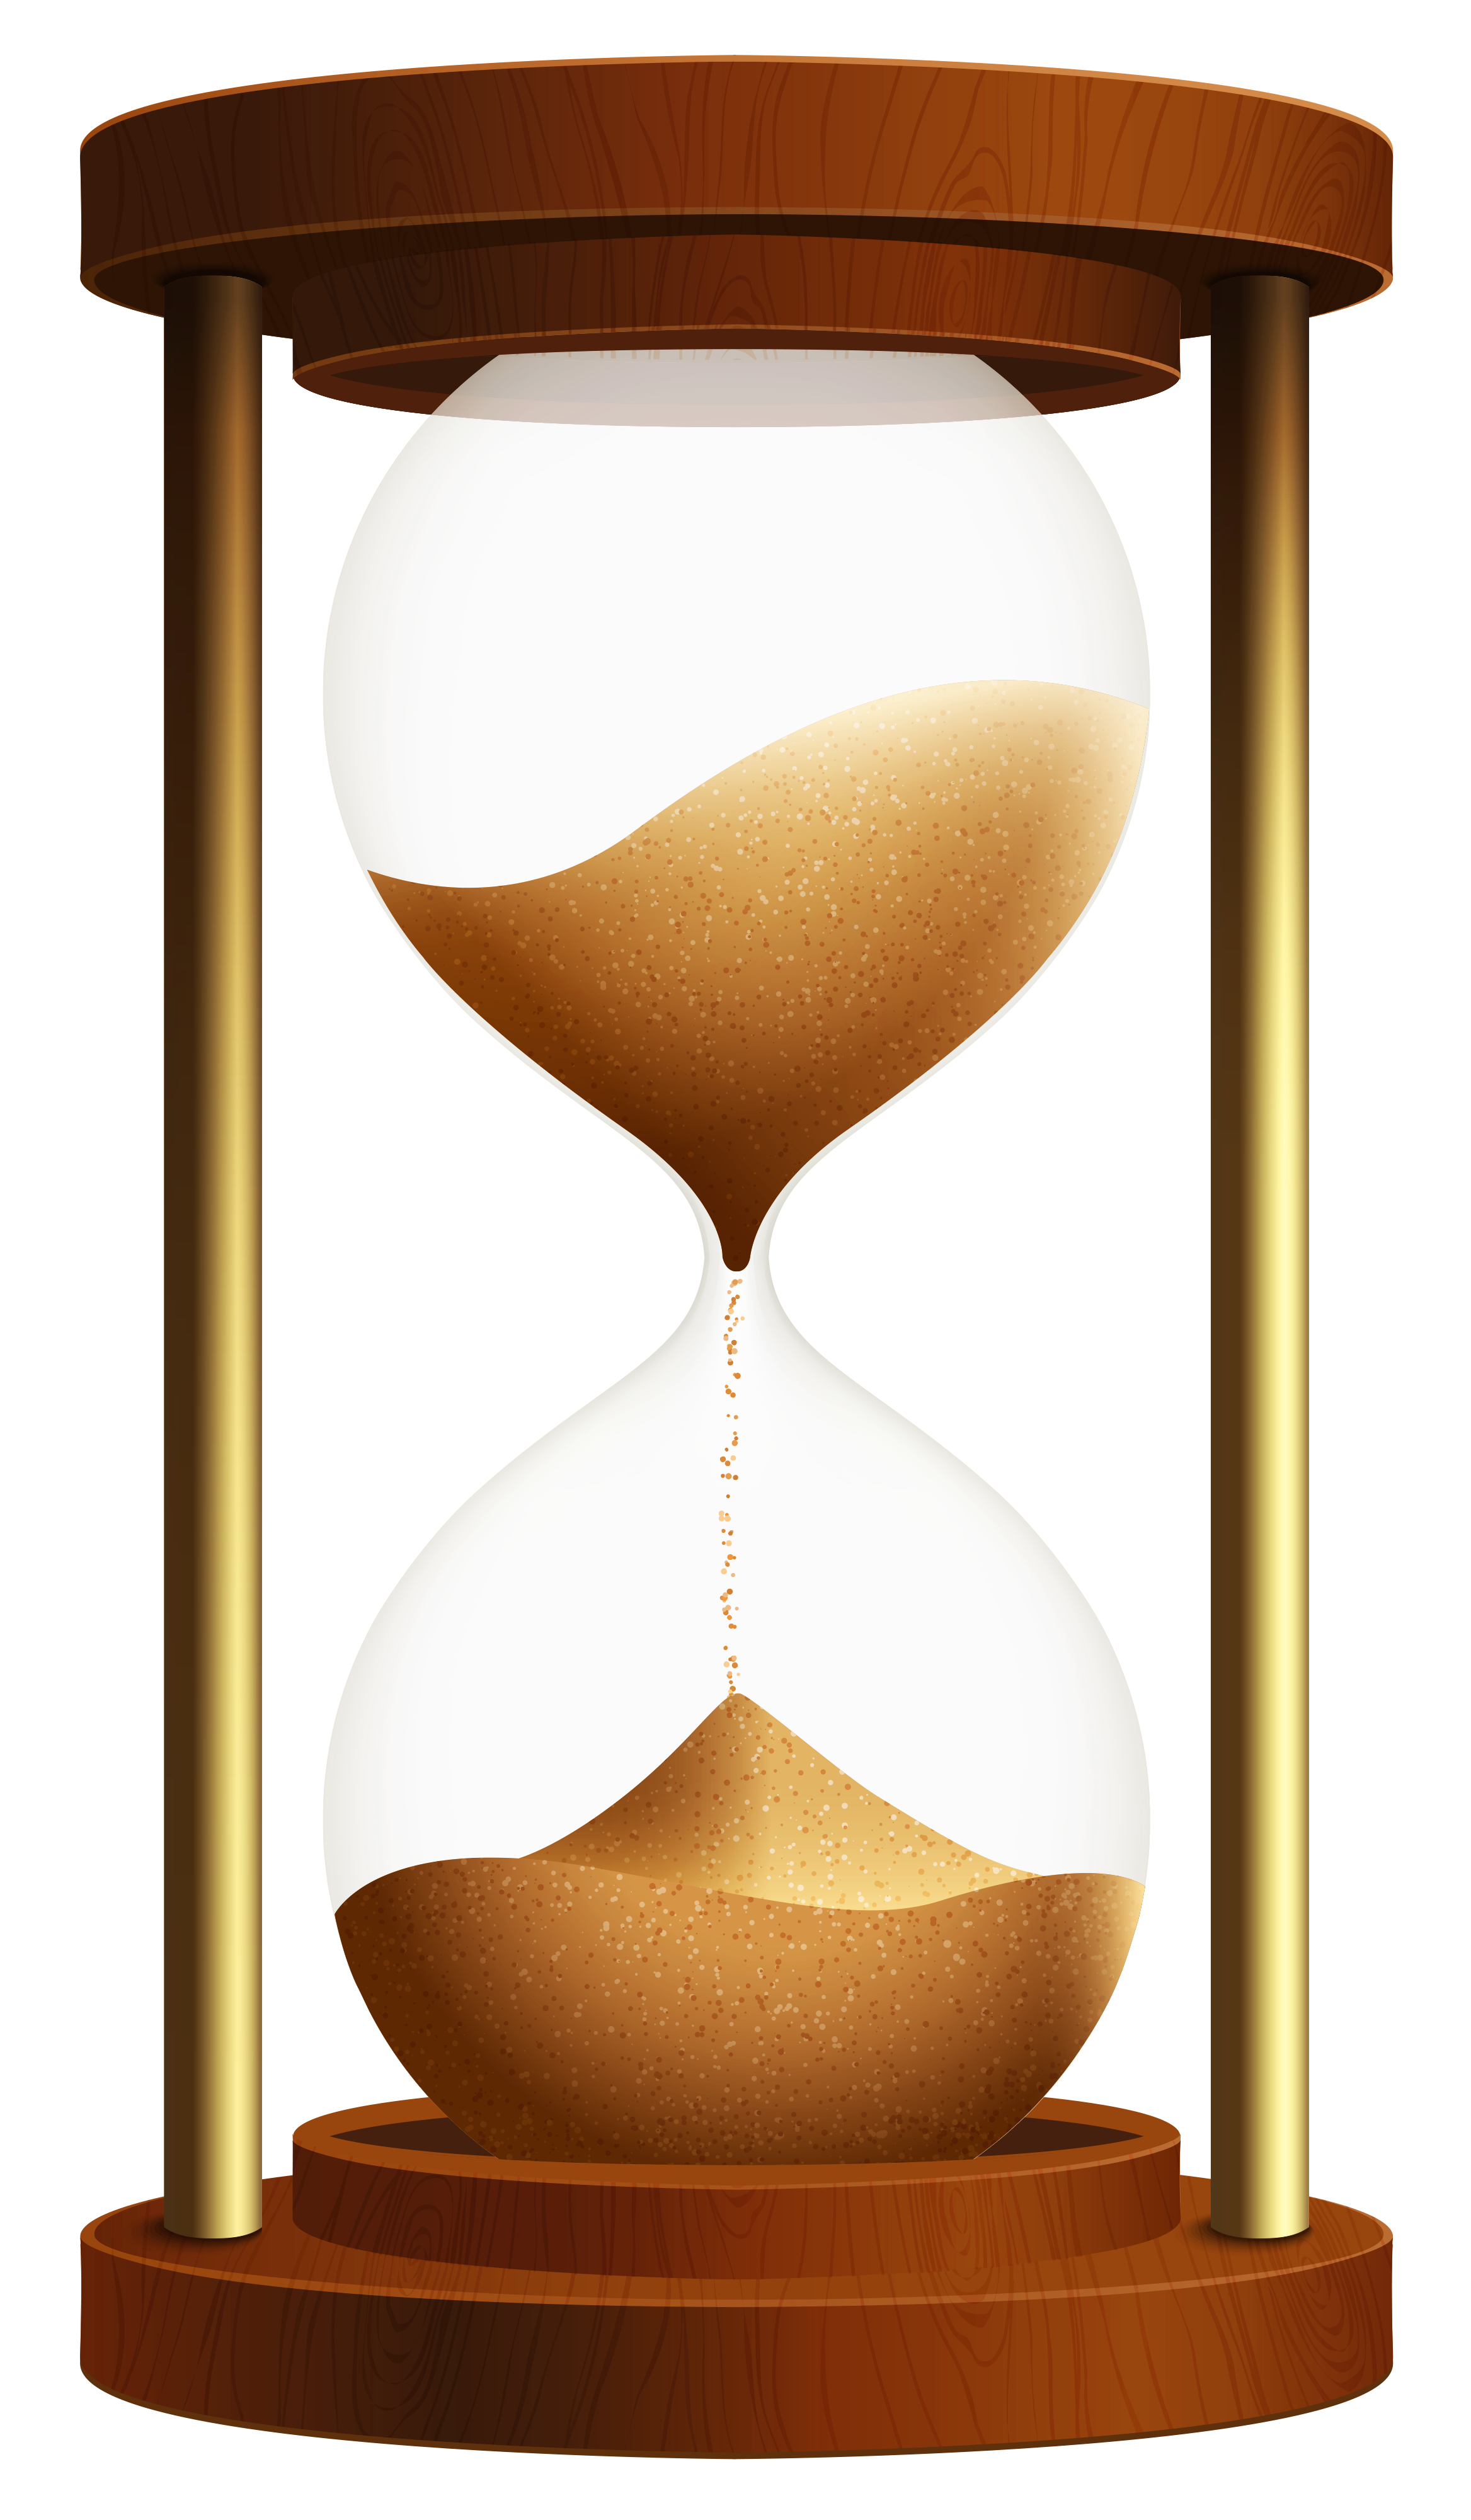 vector royalty free download Clock clipart candle. Sand png best web.